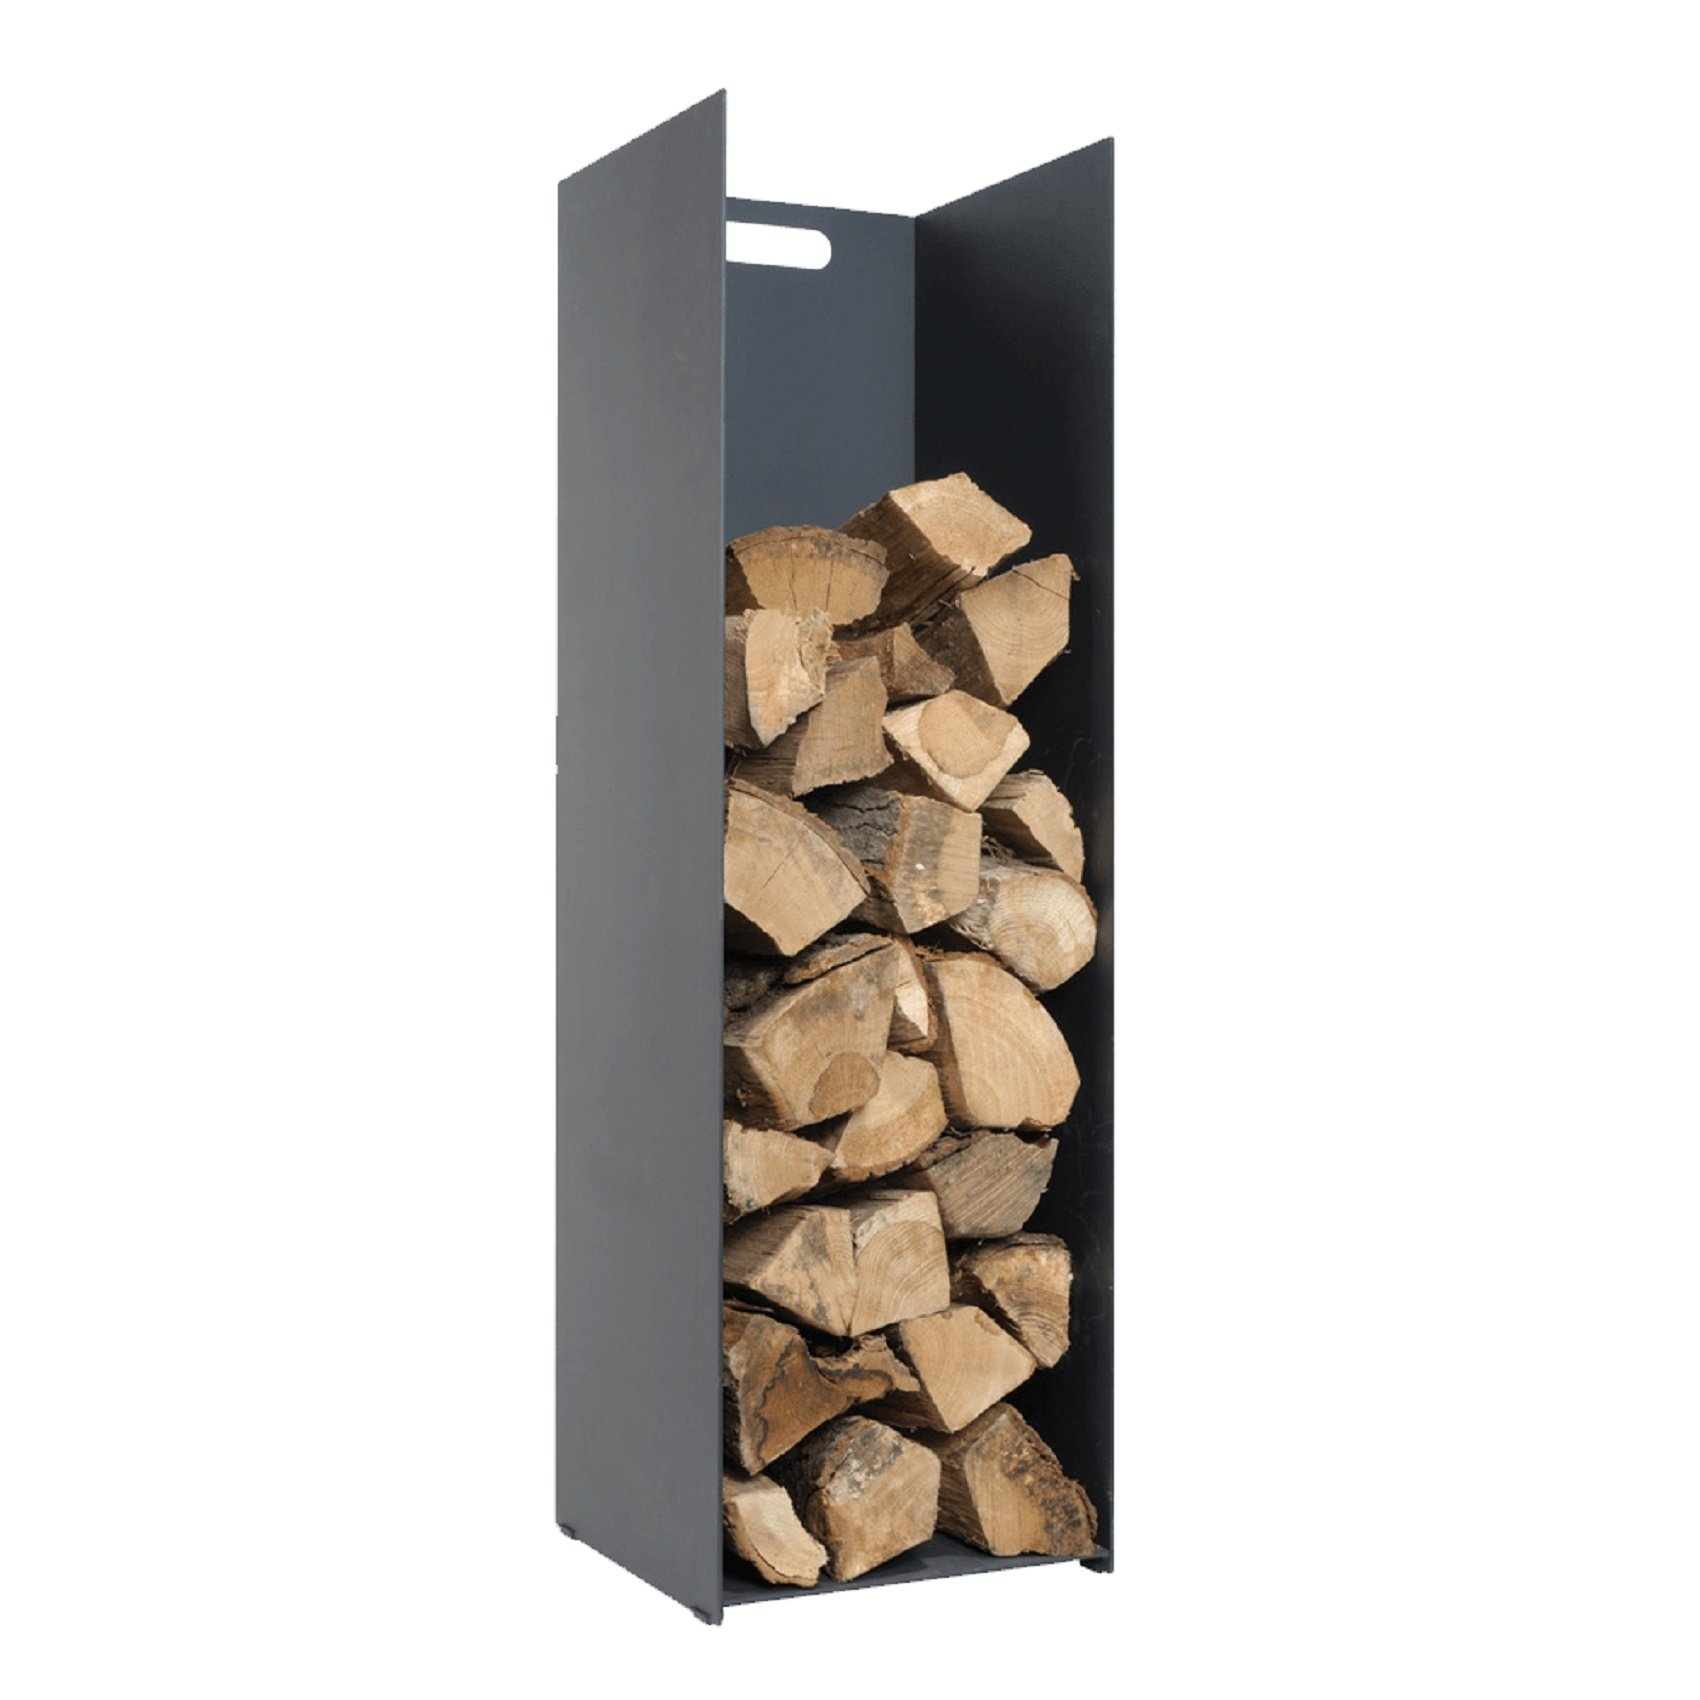 Stovax Steel Log holder In 3 Sizes/wood basket/ fireplace accessories (Large)